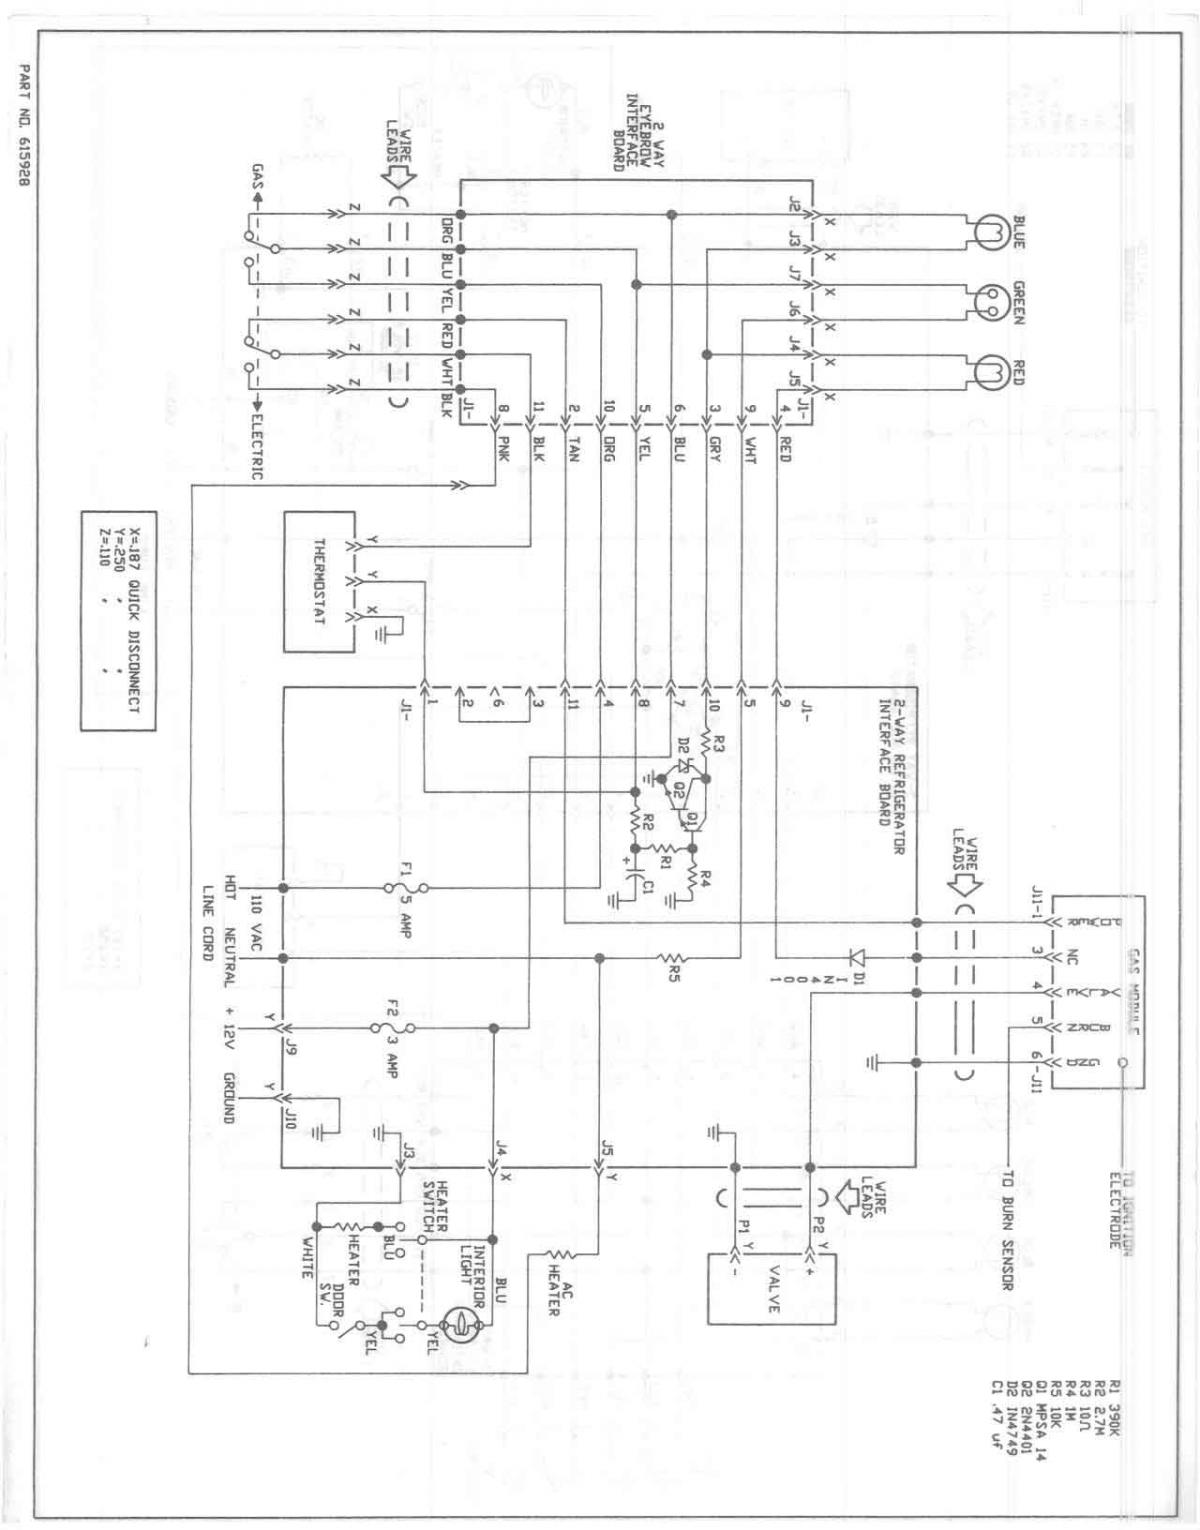 Dometic Wiring Diagram from schematron.org